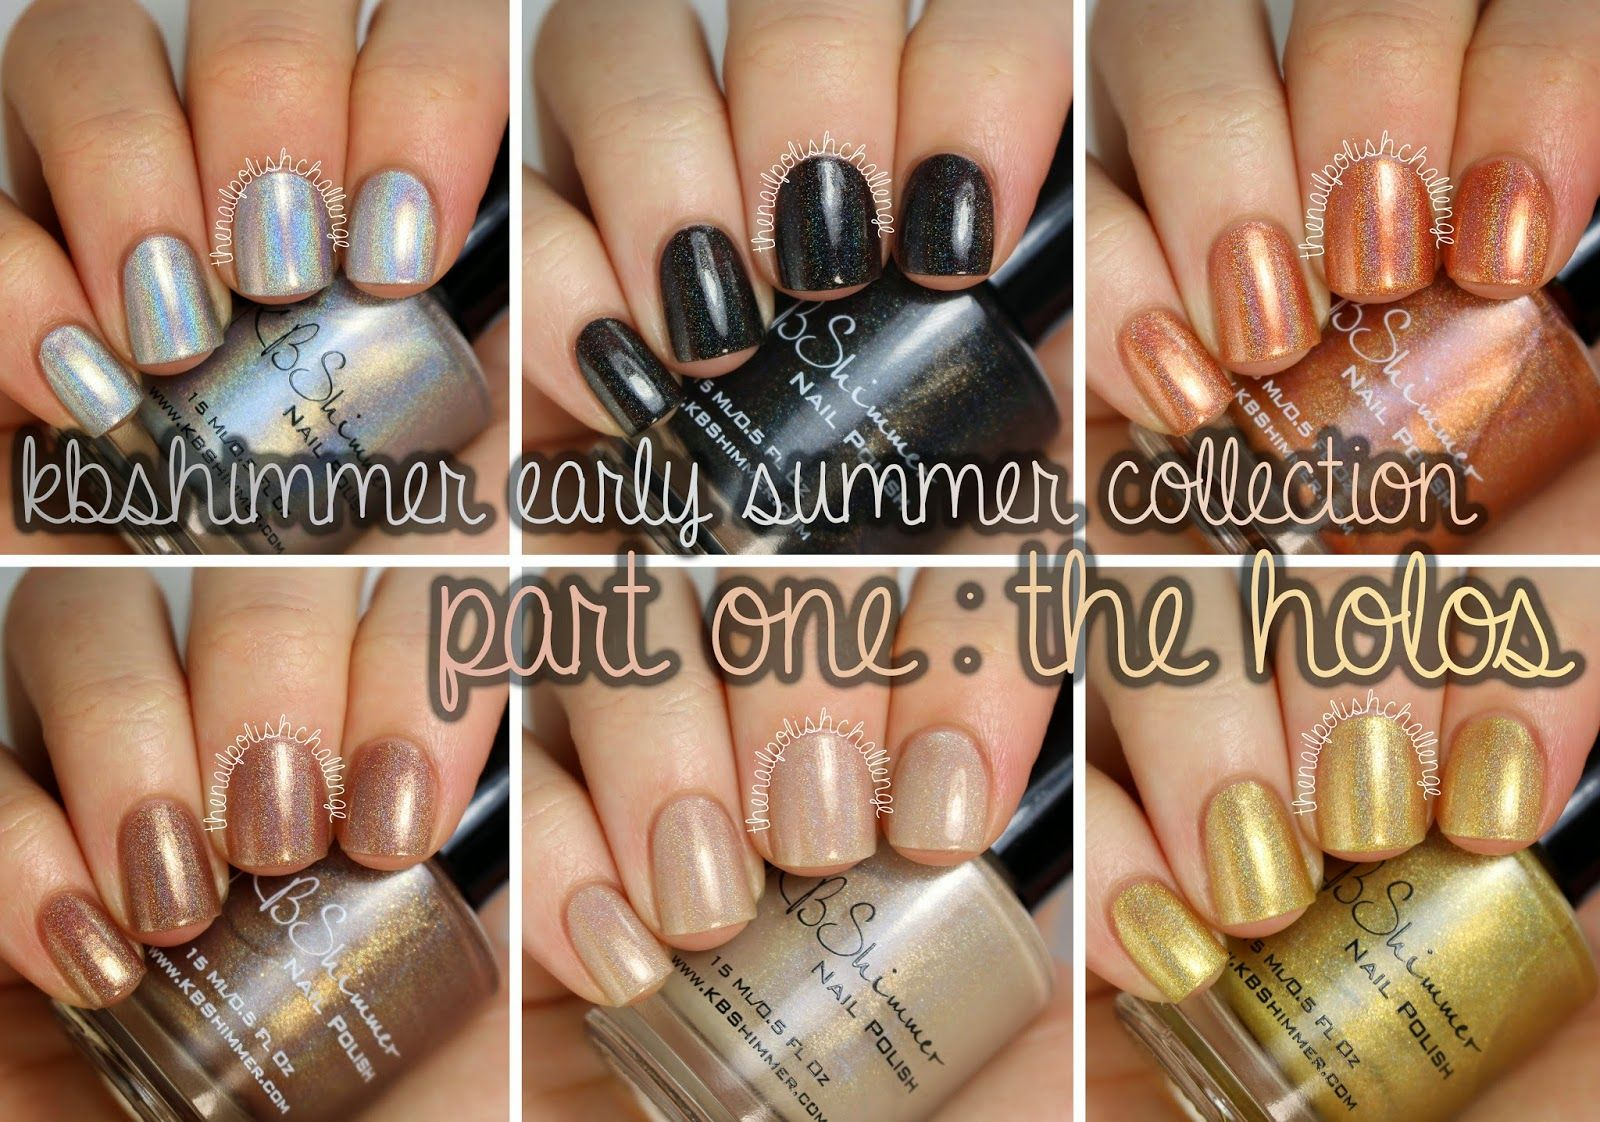 the nail polish challenge: KBShimmer Early Summer 2014 Collection, Part 1: The Holos